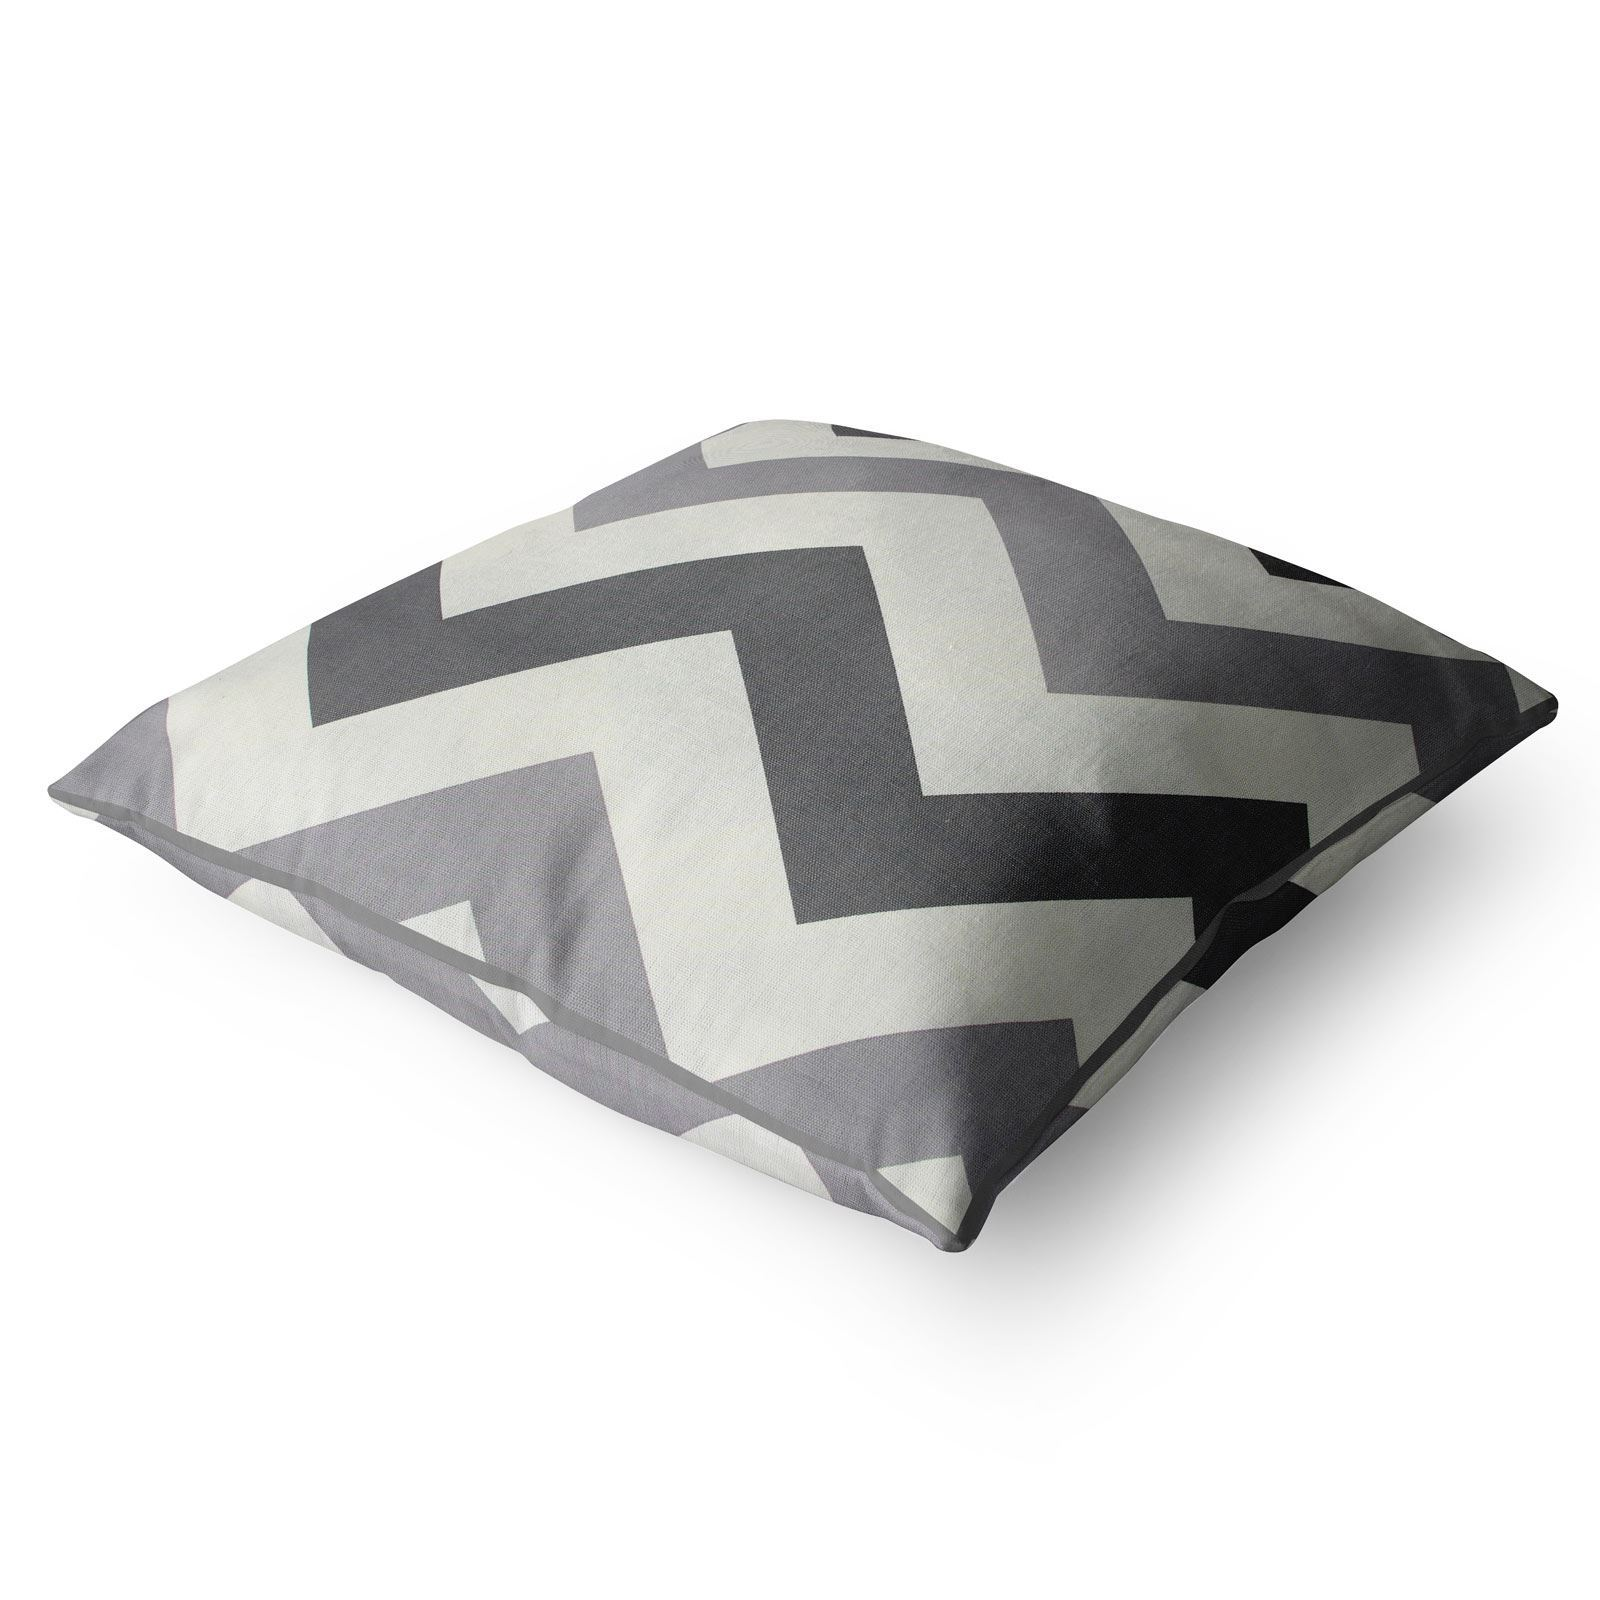 Grey-Ochre-Mustard-Cushion-Cover-Collection-17-034-18-034-Covers-Filled-Cushions thumbnail 45